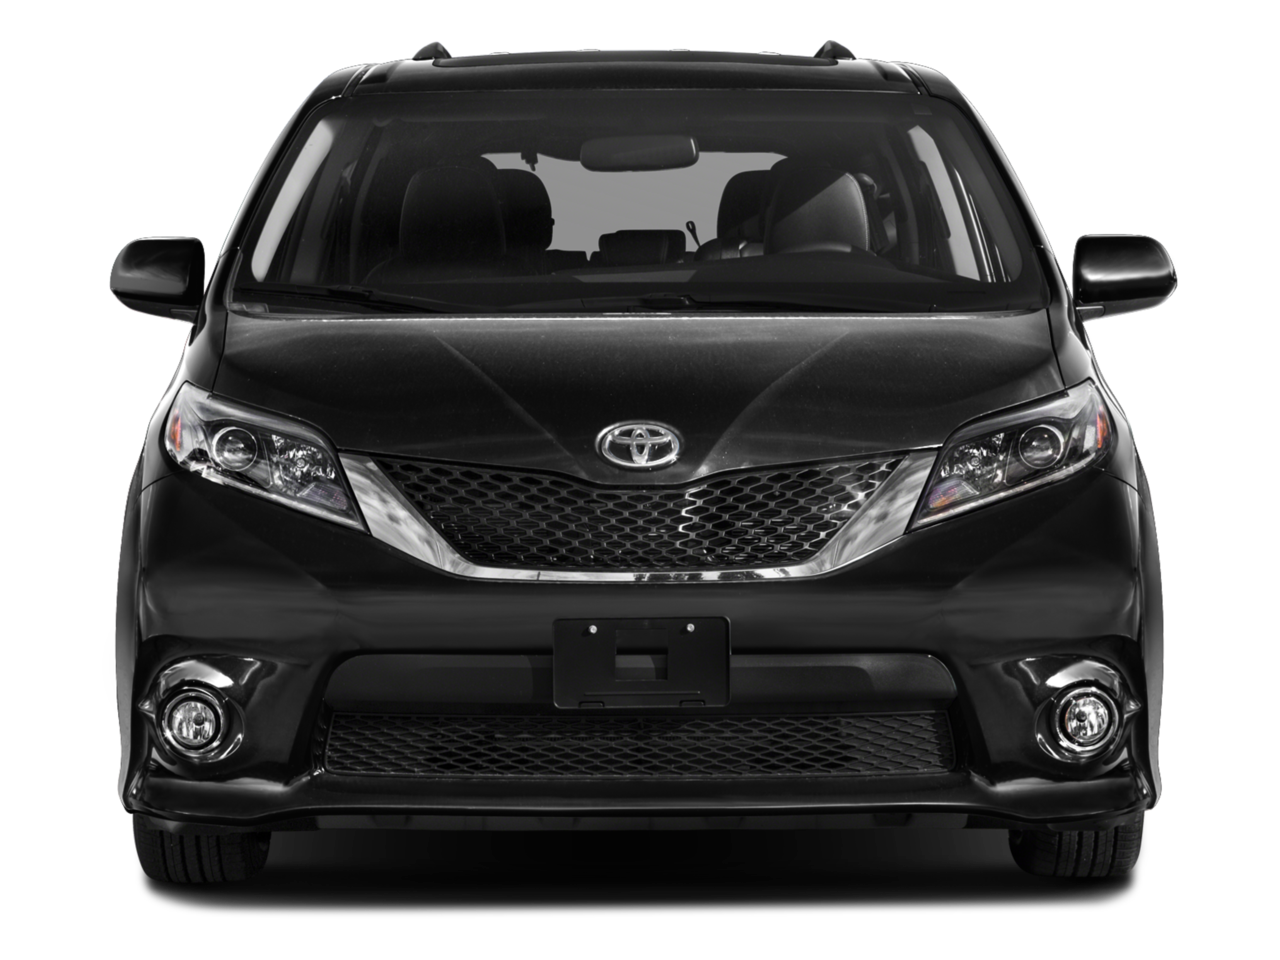 2017 toyota sienna model research krause toyota serving allentown pa. Black Bedroom Furniture Sets. Home Design Ideas